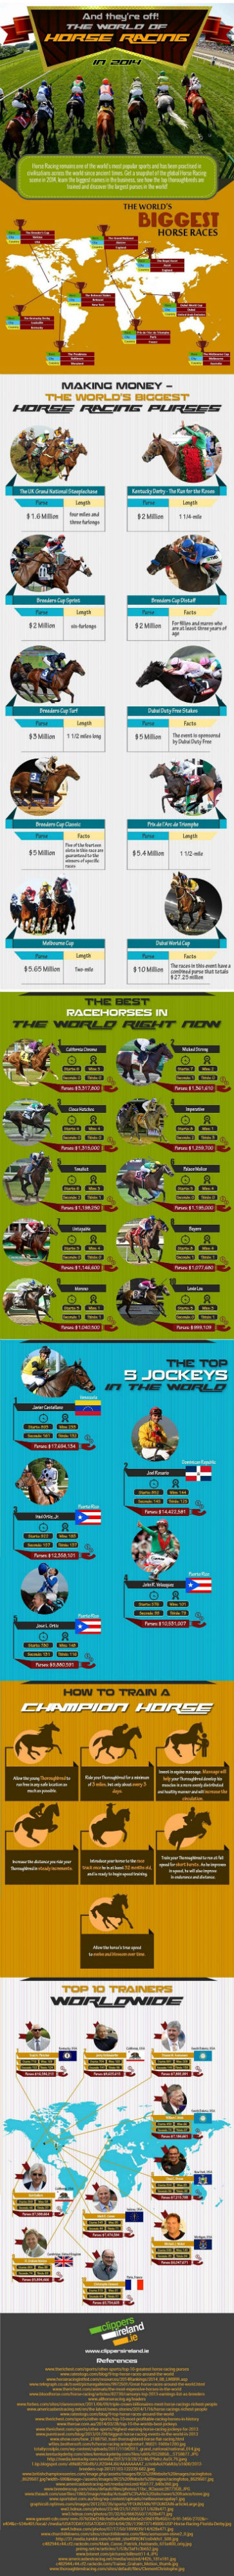 World Of Horse Racing In 2014 [Infographic]